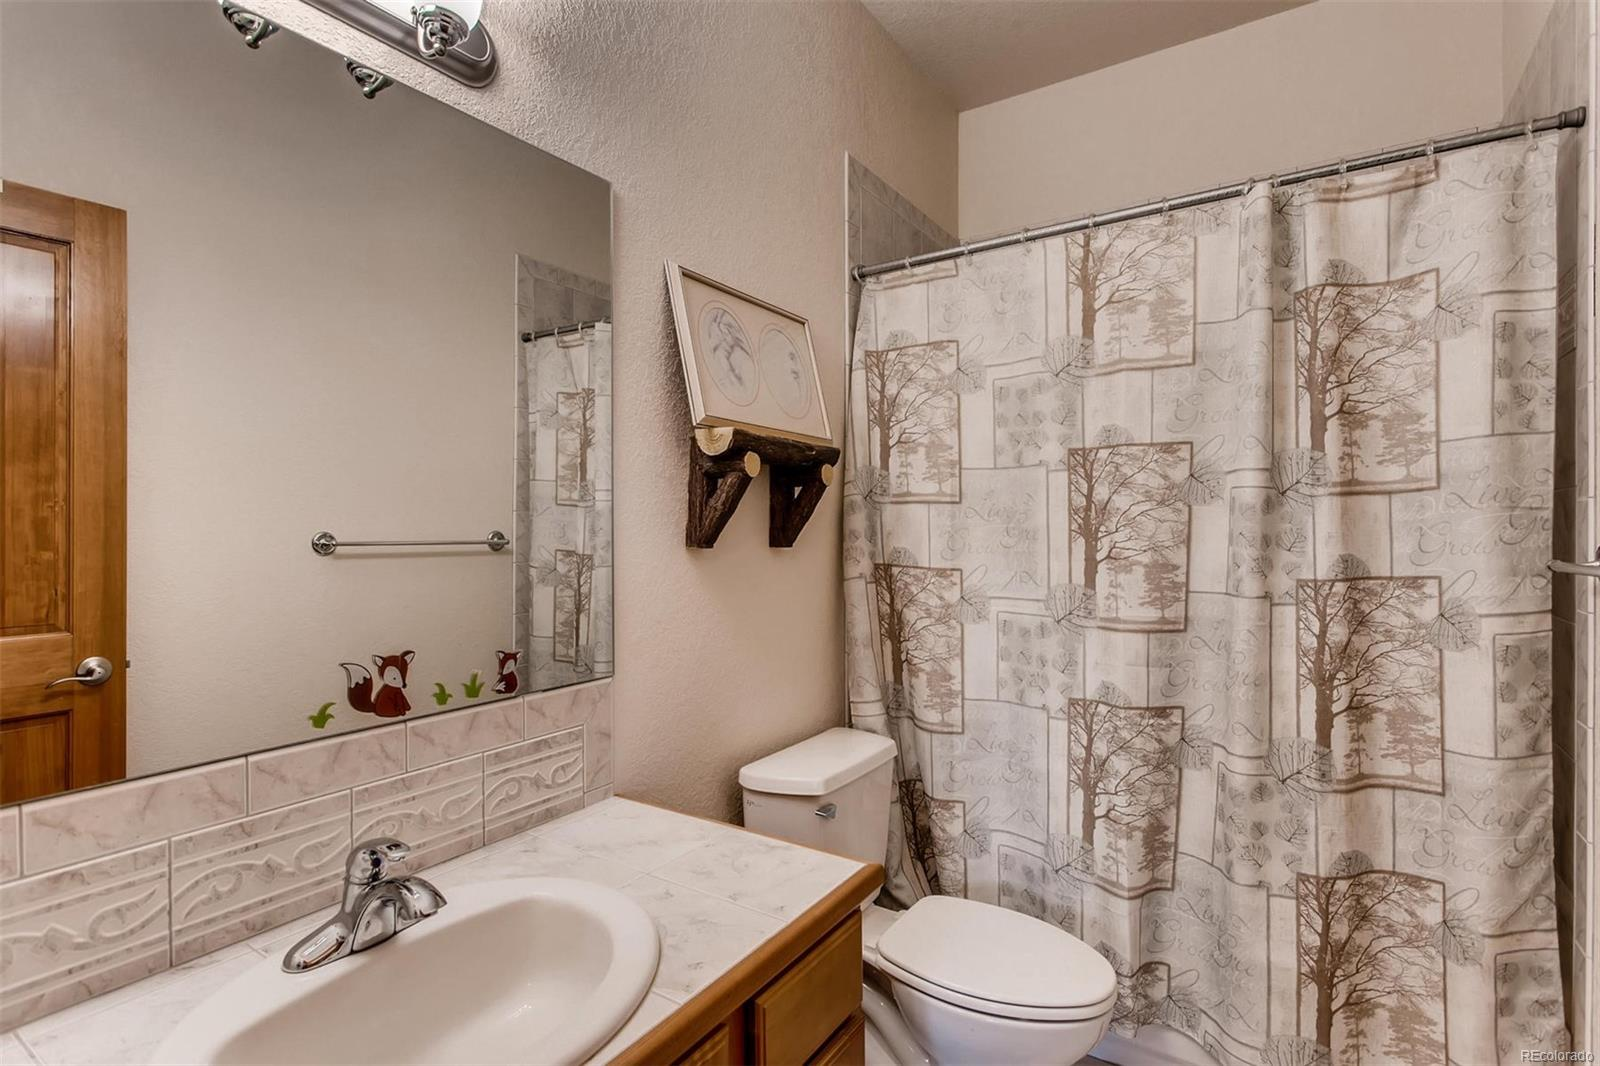 Yes - every bedroom has a bathroom. This home will not let you down!